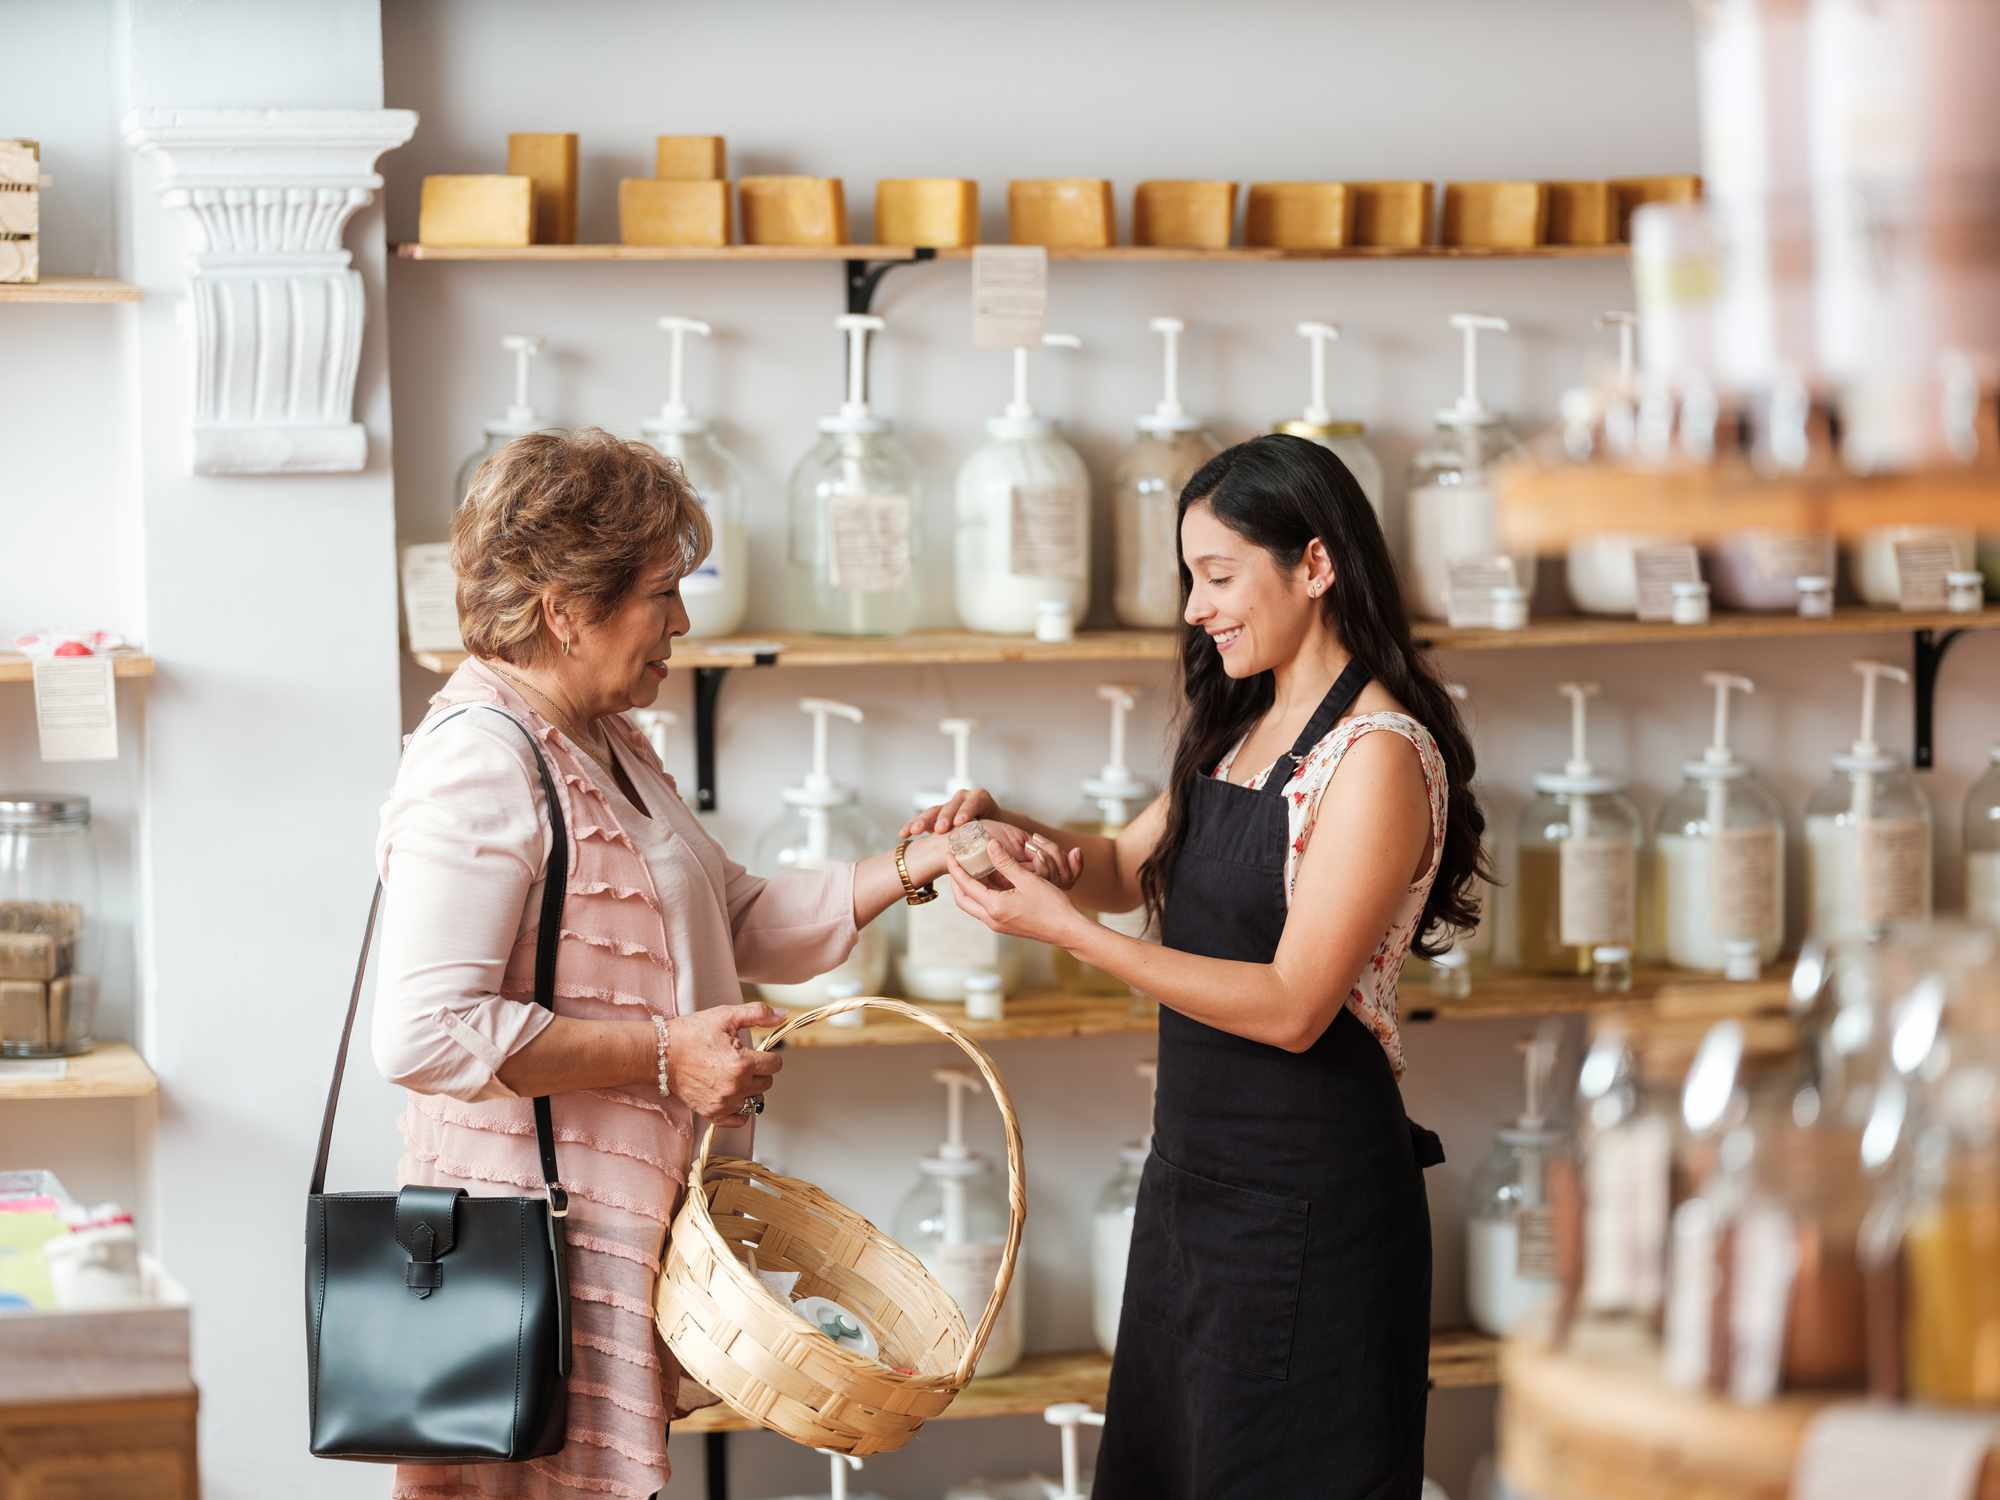 A senior Latino woman being helped by a younger woman at a sustainable shop.